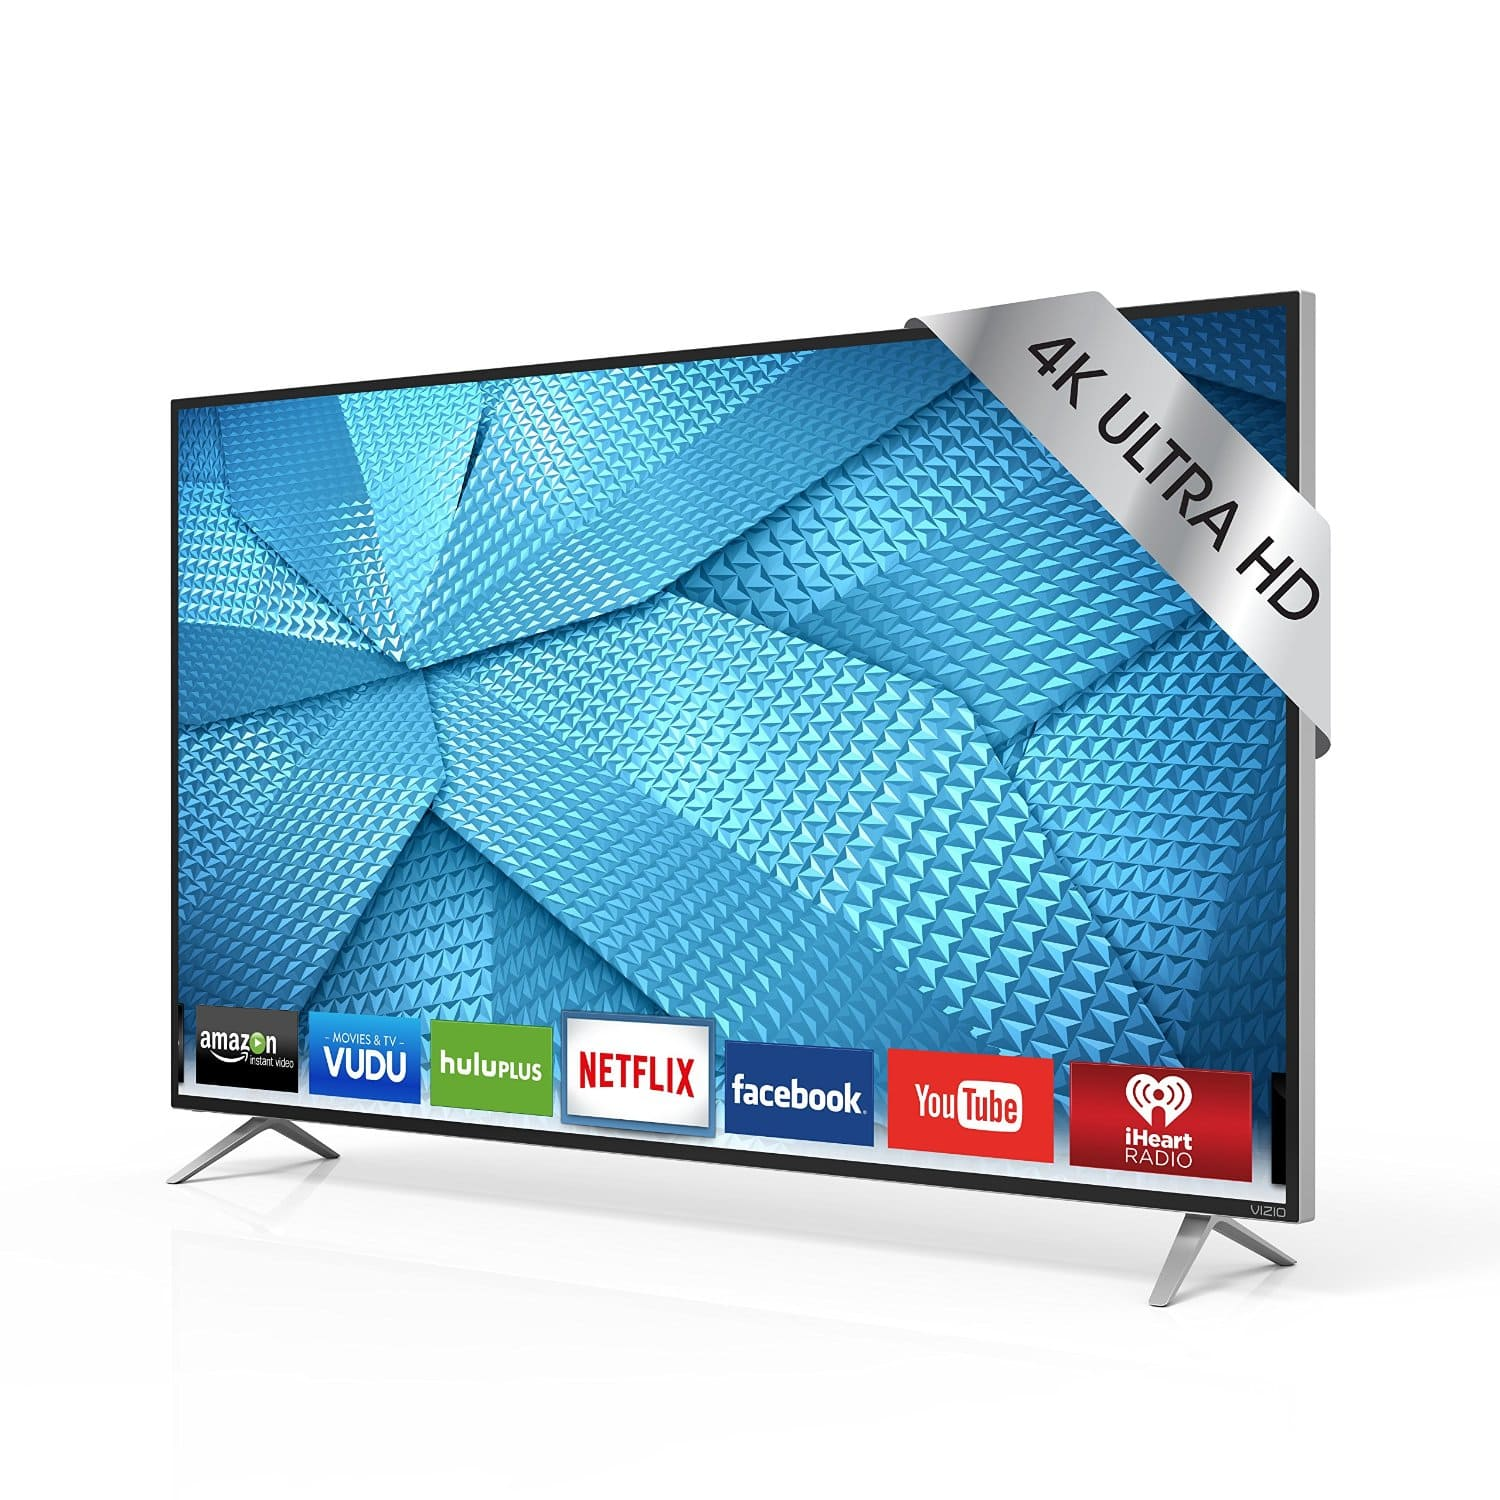 "Vizio M-Series M55-C2 55"" Class 4K Ultra HD Full-Array Smart LED TV $599 + Free Shipping (eBay Daily Deal)"